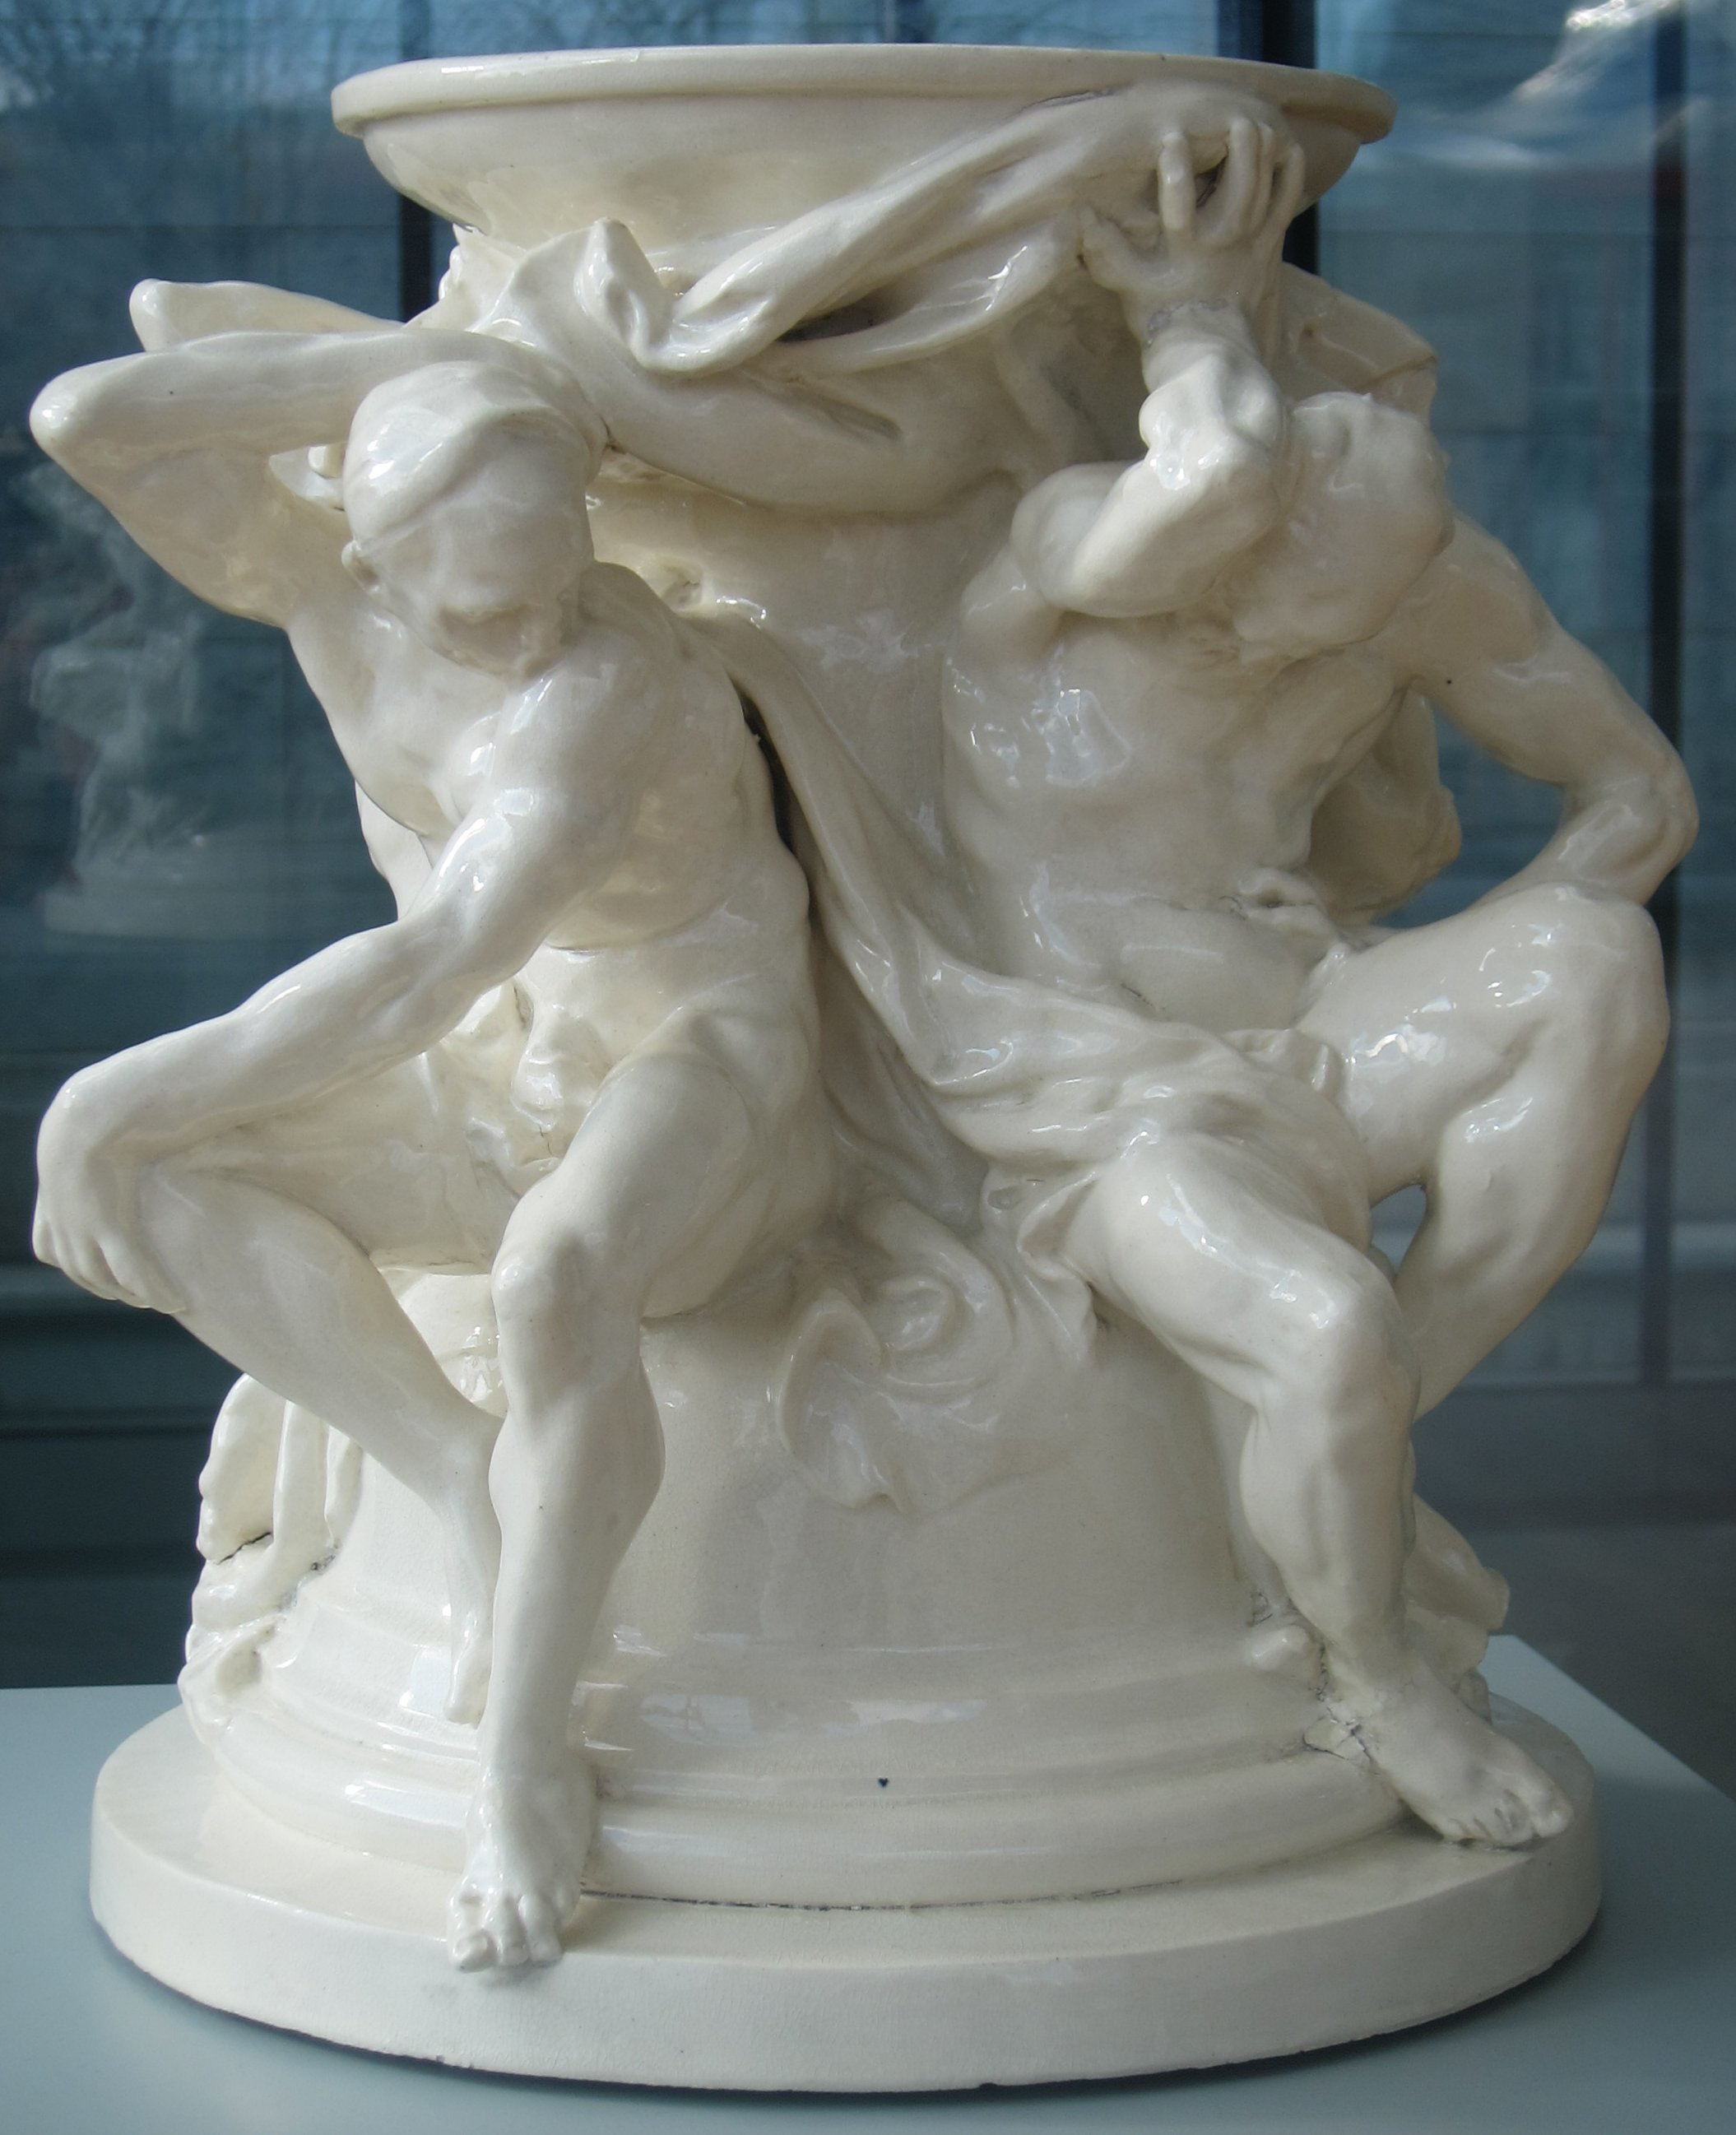 https://upload.wikimedia.org/wikipedia/commons/6/69/%27Titans%2C_Support_for_a_Vase%27_by_Albert-Ernest_Carrier-Belleuse_and_Auguste_Rodin.JPG